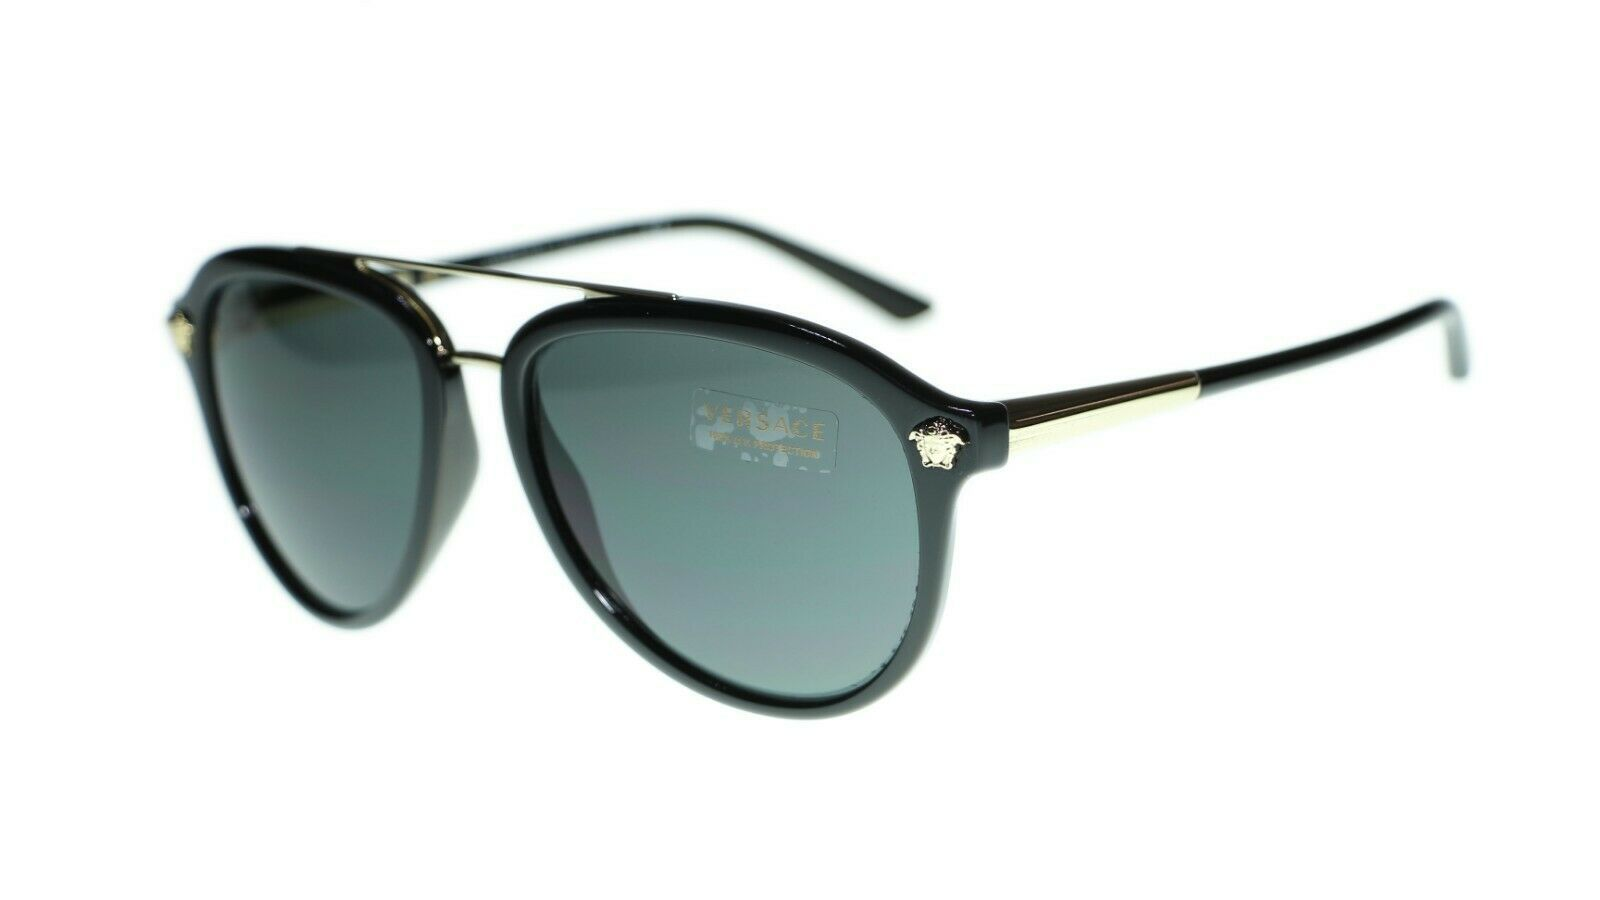 Versace Men Sunglasses VE4341 Pilot 58mm Authentic